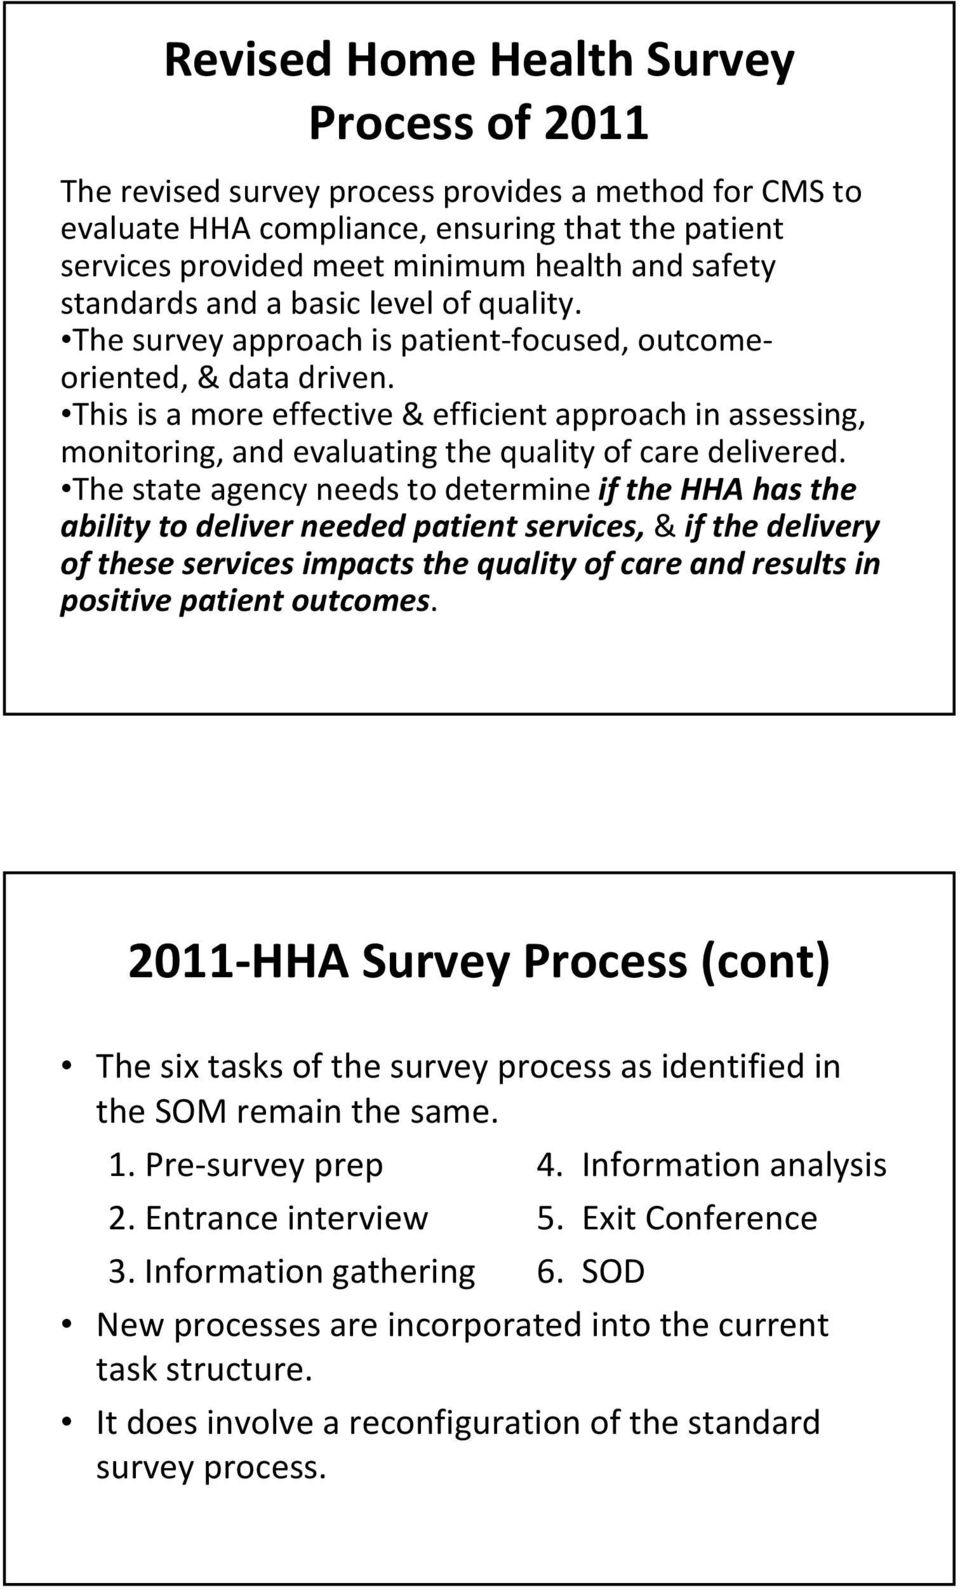 This is a more effective & efficient approach in assessing, monitoring, and evaluating the quality of care delivered.